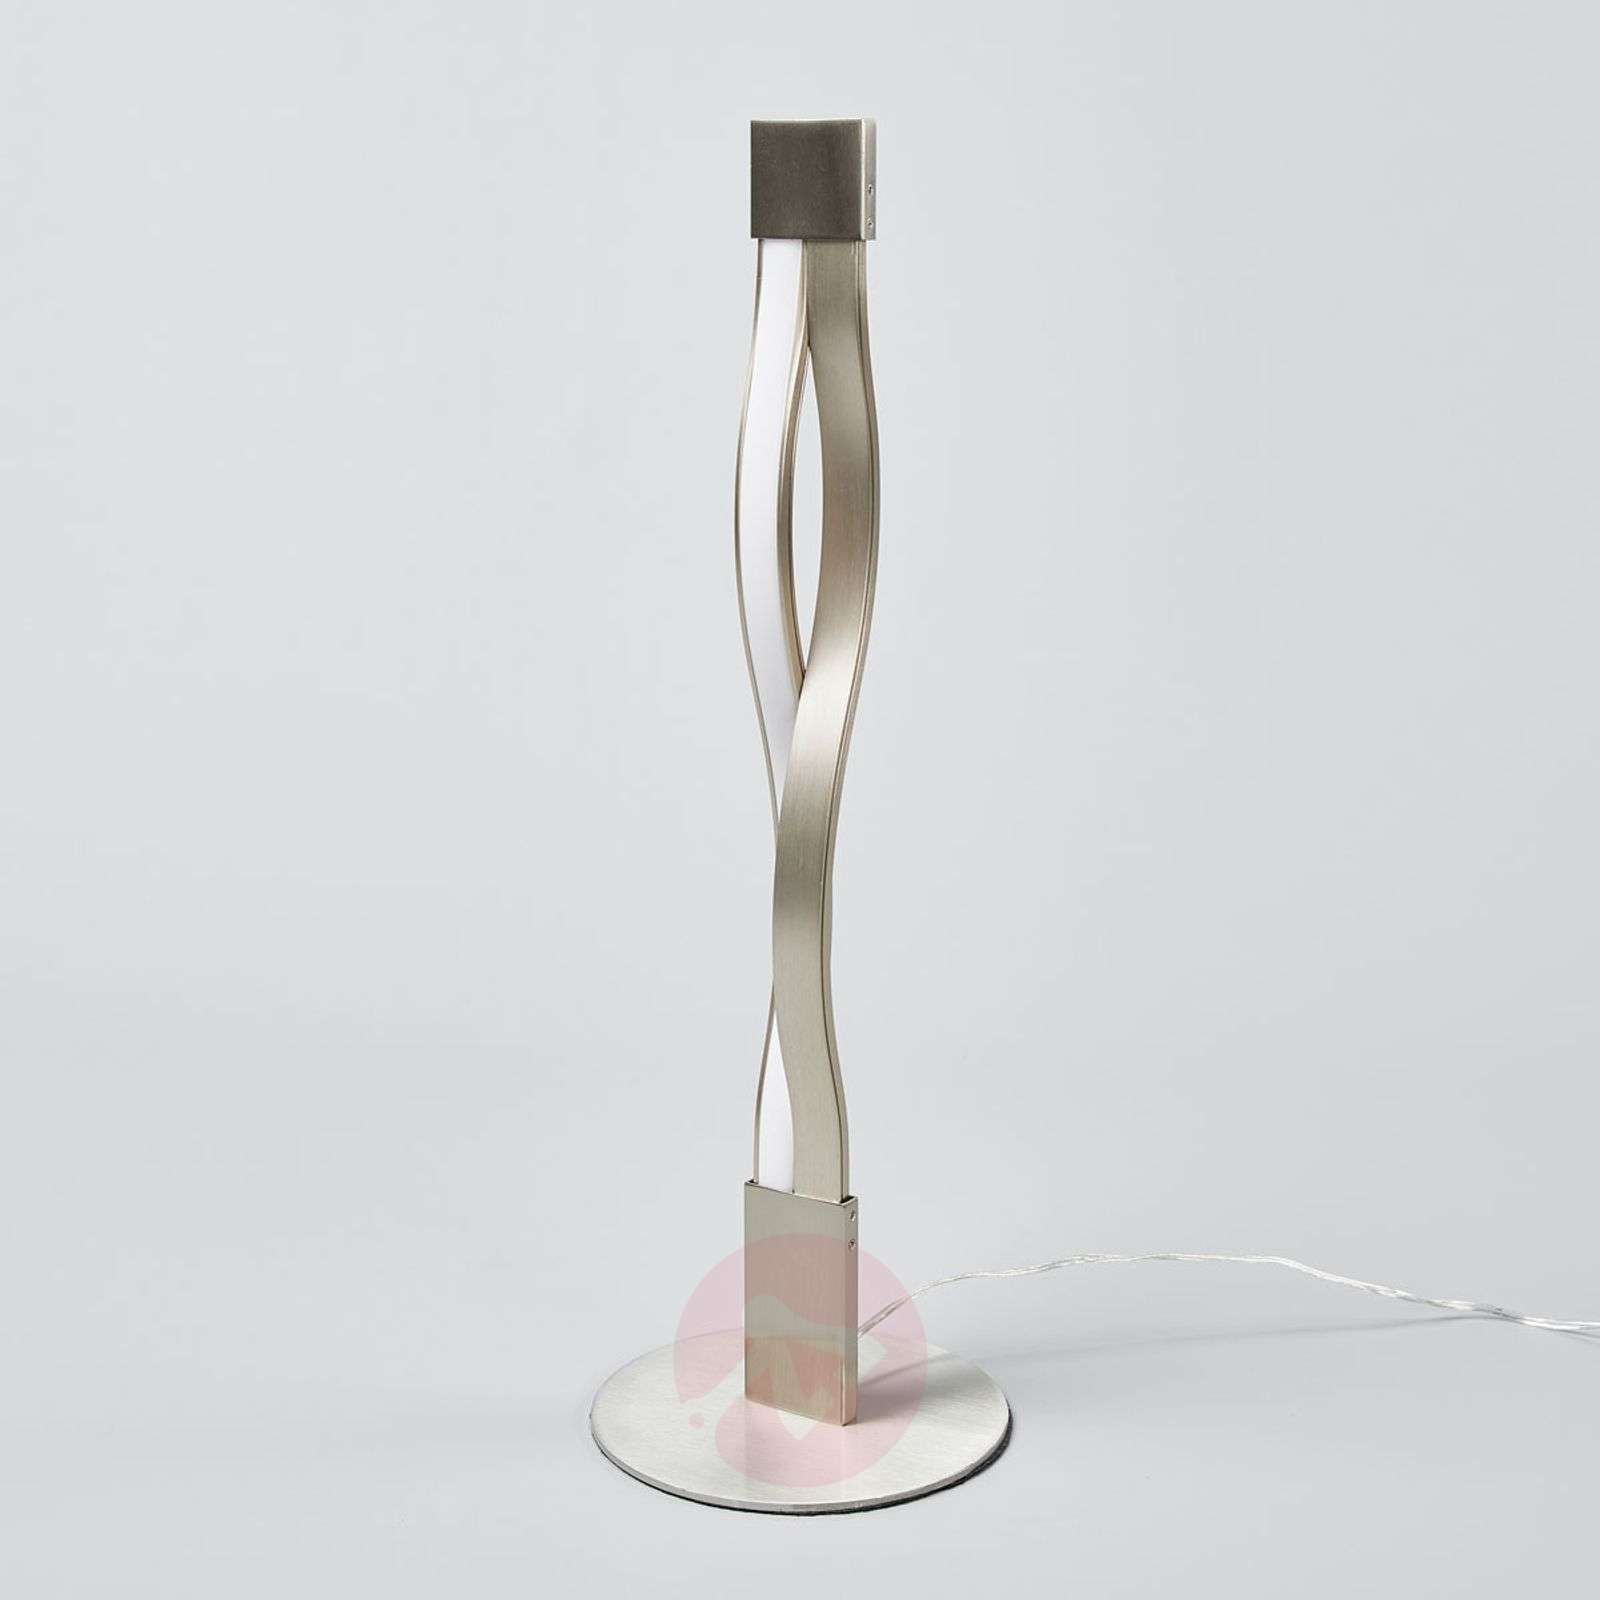 Tori modern looking LED table lamp-9985065-02